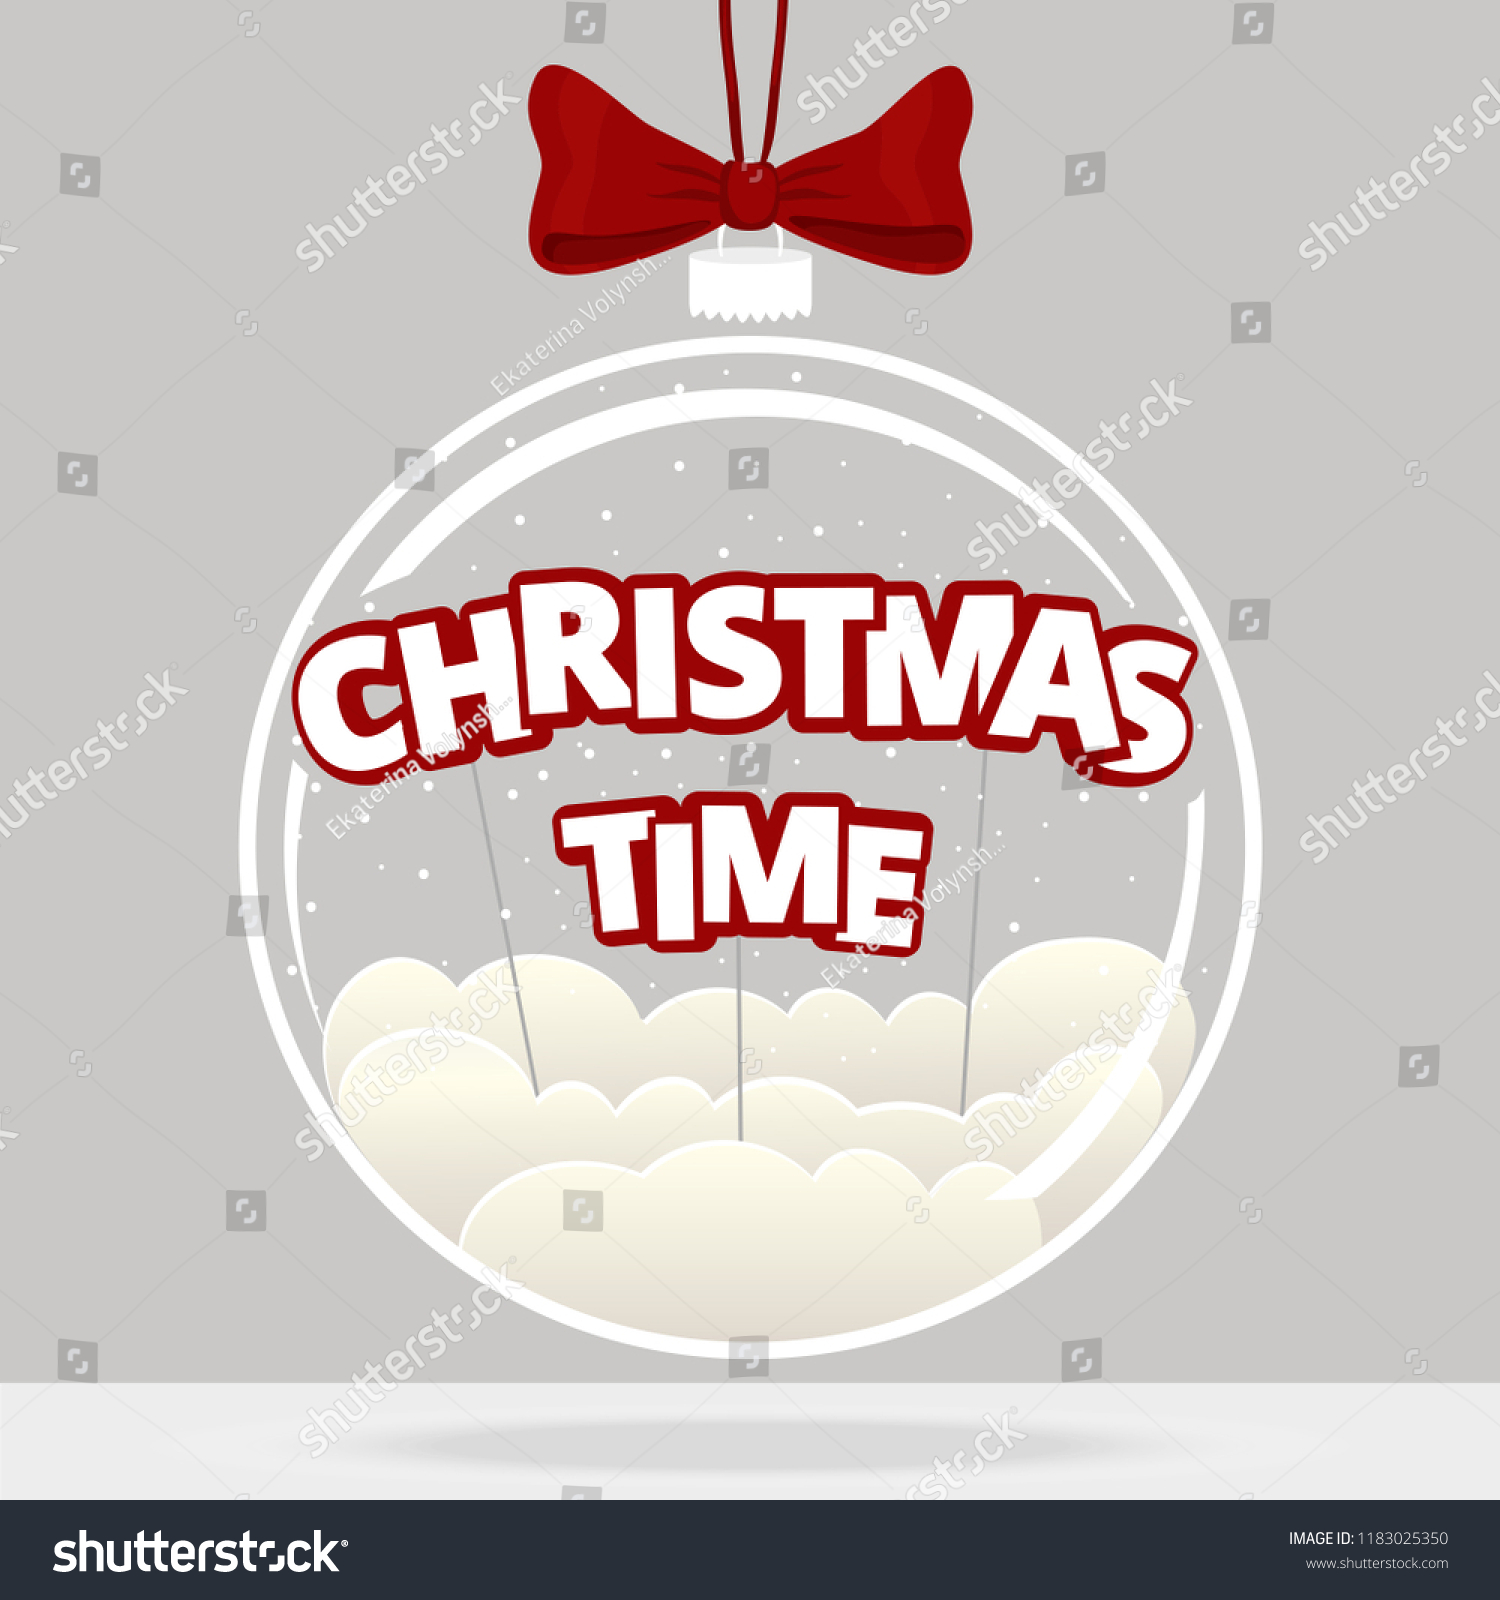 Christmas Ball Quote Christmas Time Transparent Stock Vector ...